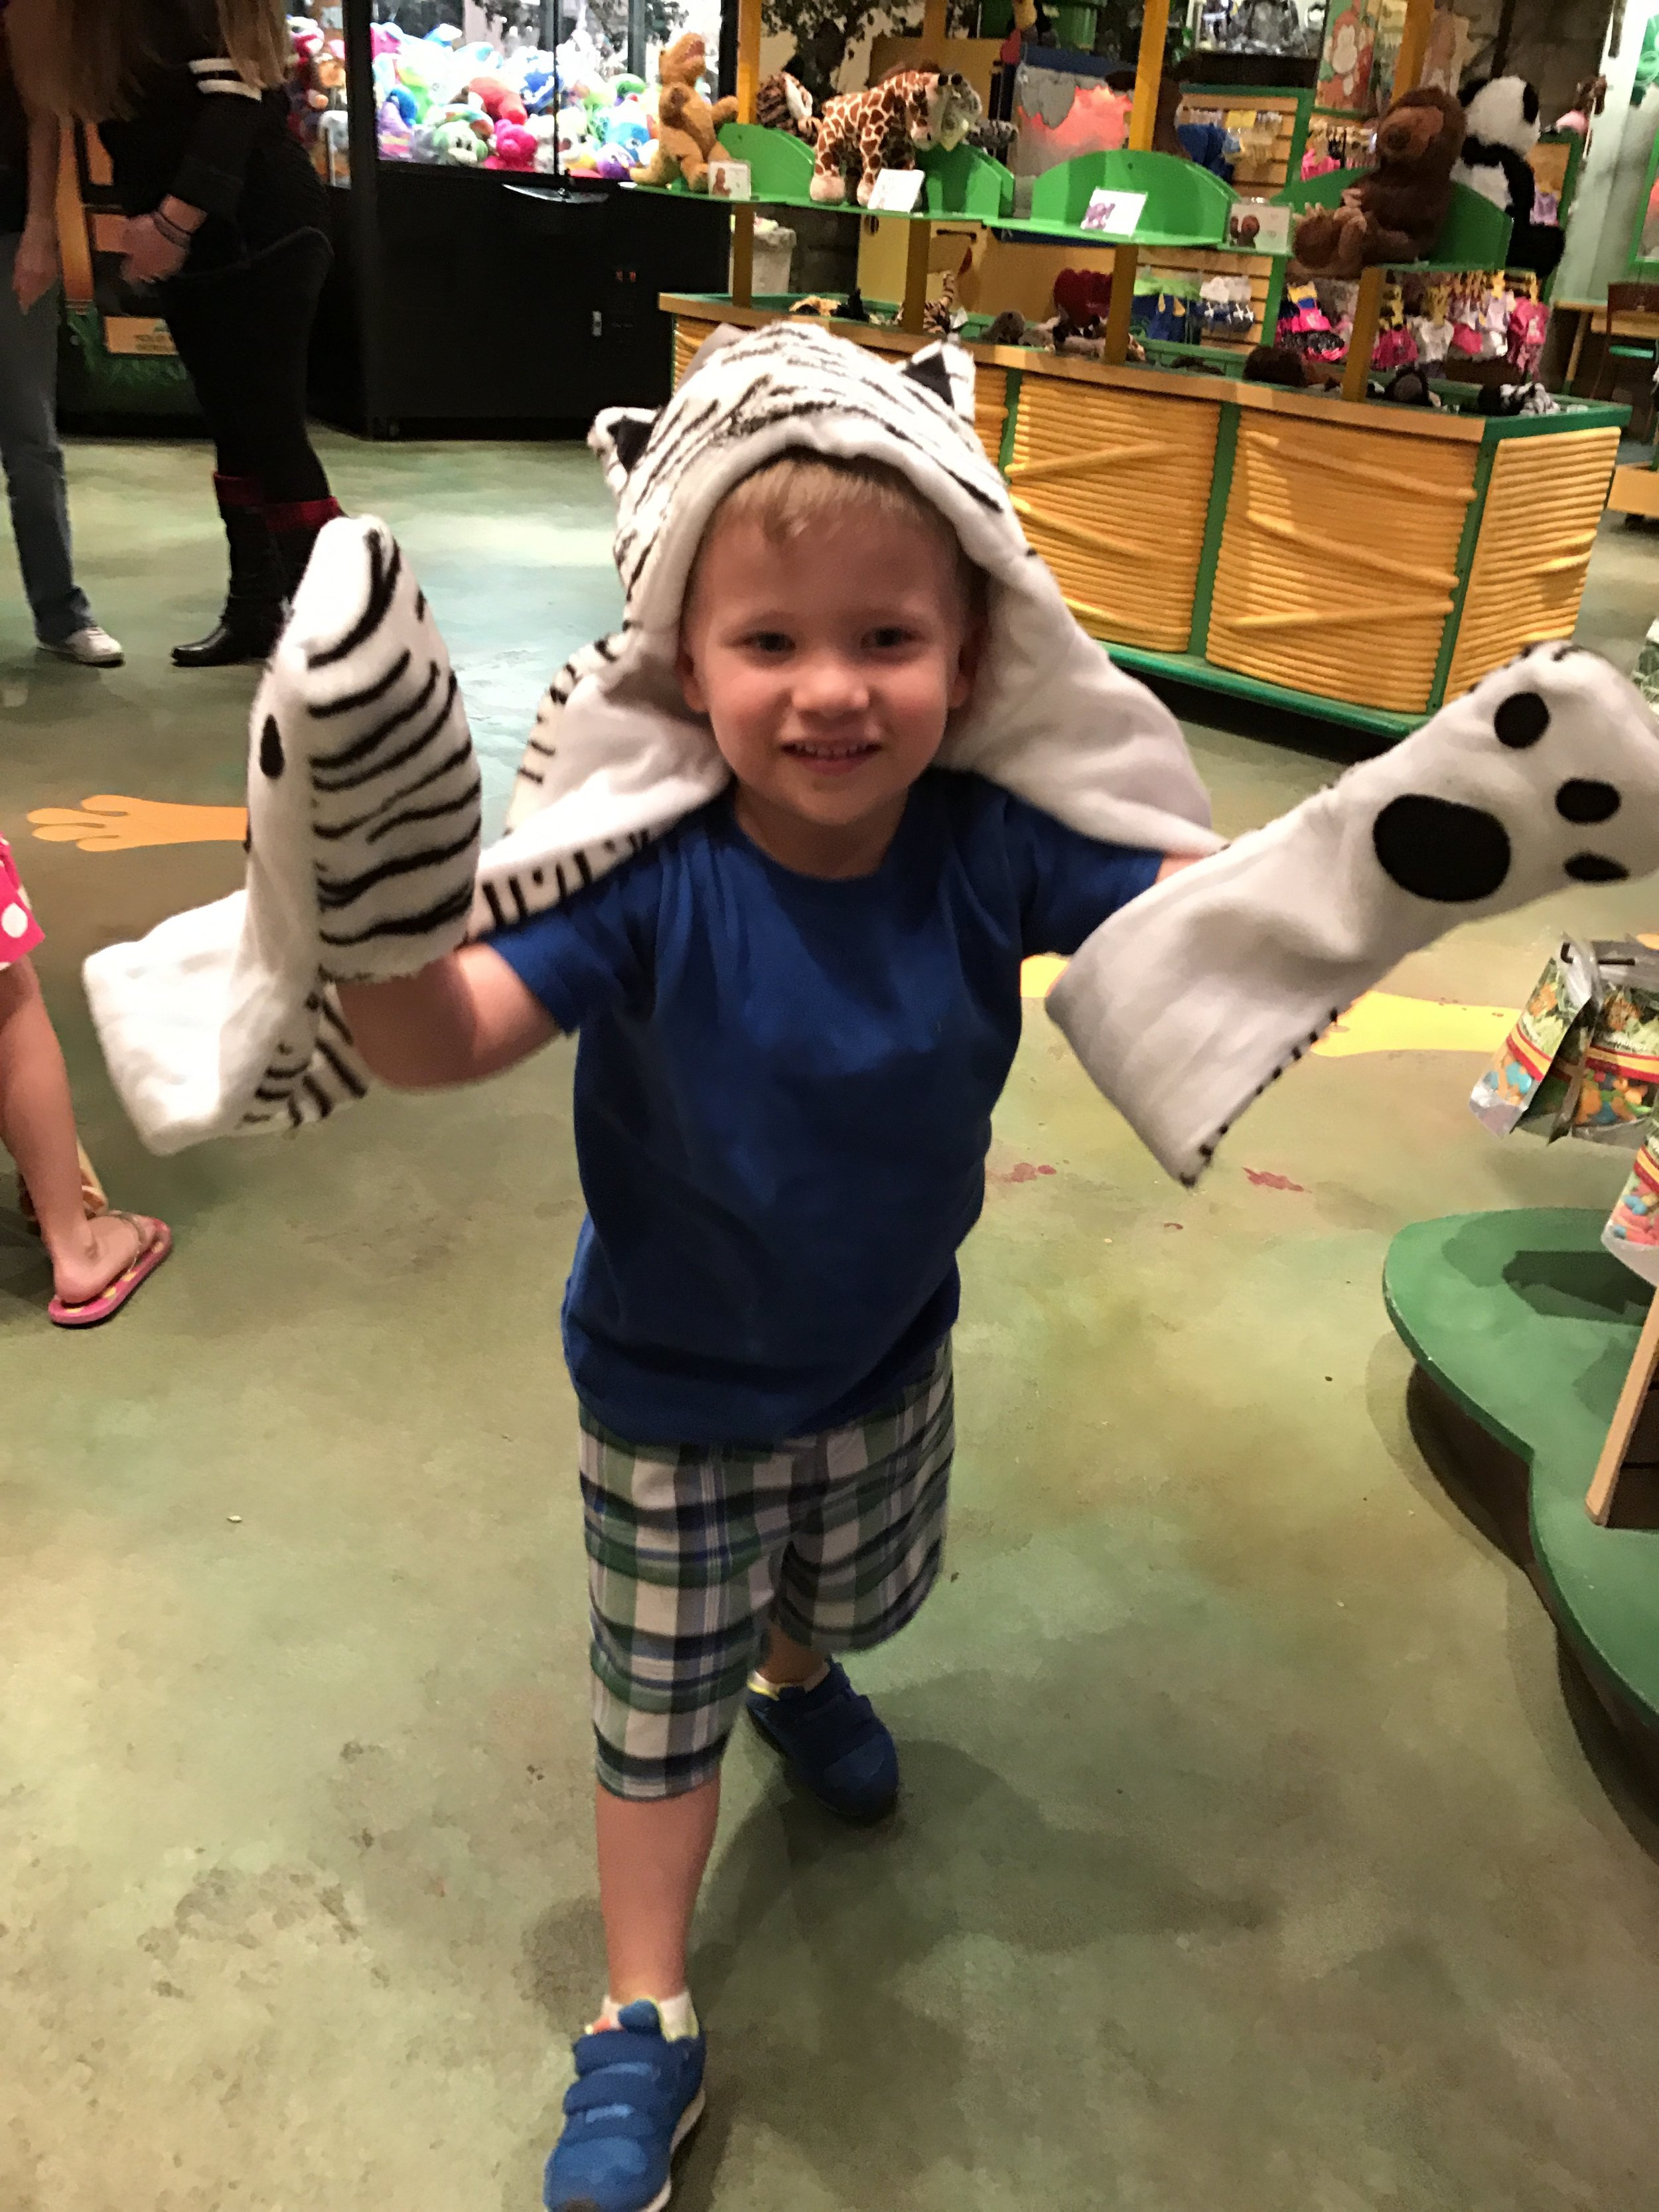 Went to the Rainforest Cafe for dinner one night. Their kids meals are great and we had leftovers for the next day. Their adult meals are huge and share worthy as well. Also, a big money saver!